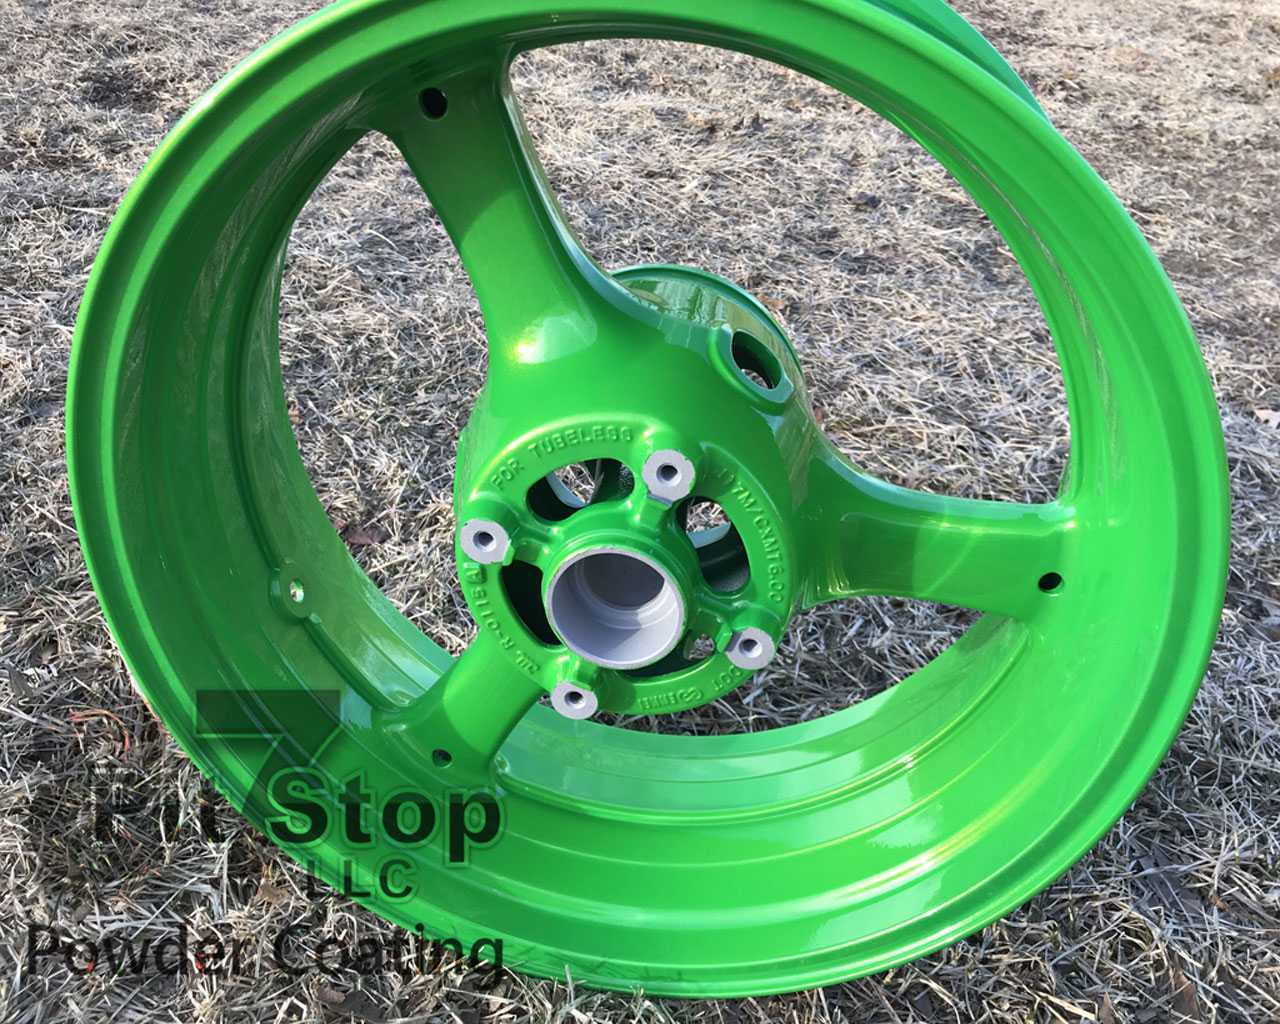 candlegreenshockerwheel1280.jpg